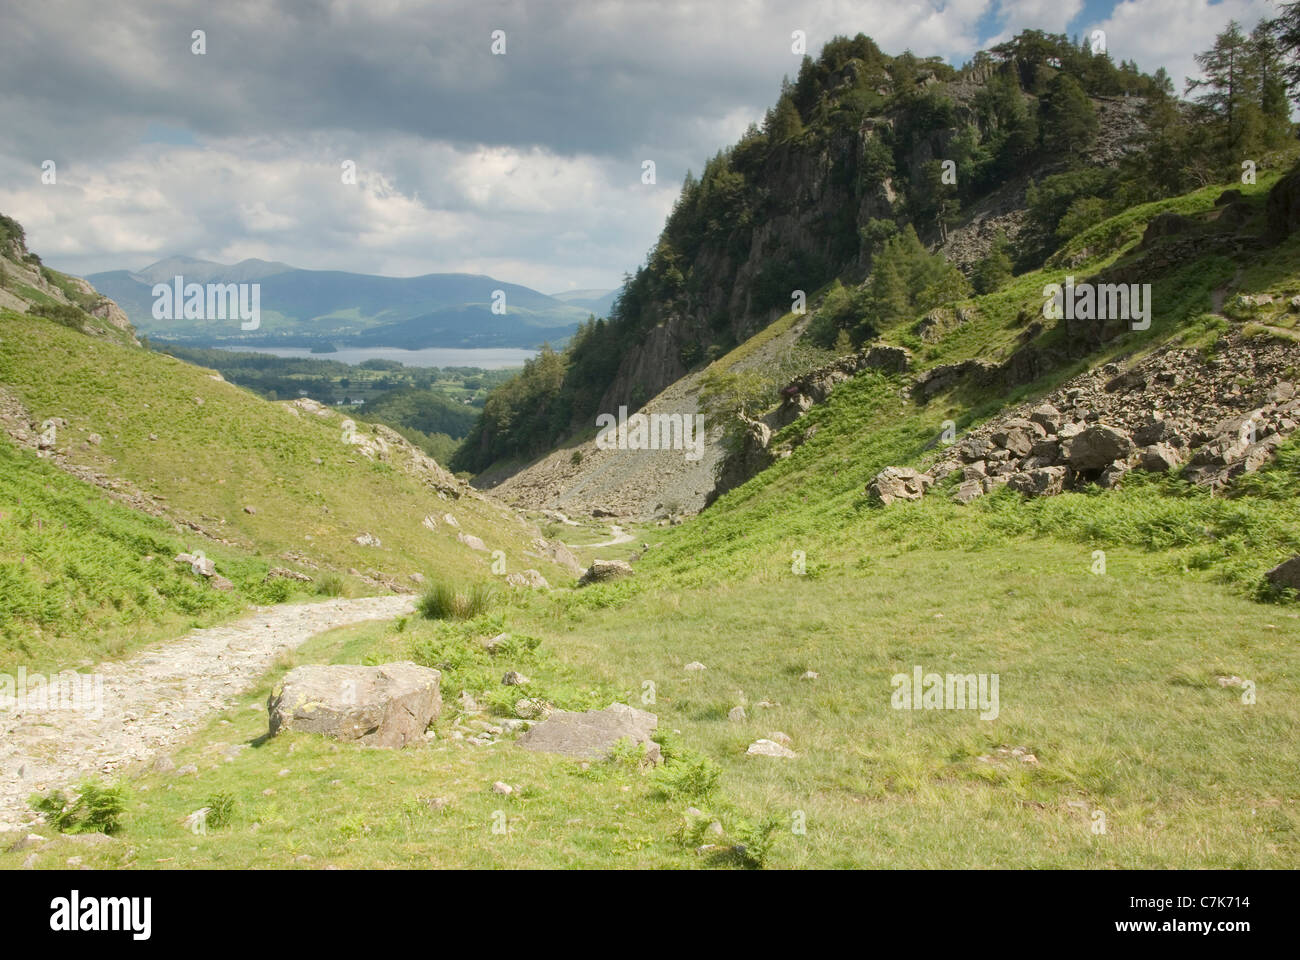 Castle Crag from the Allerdale Ramble, Cumbria, UK - Stock Image